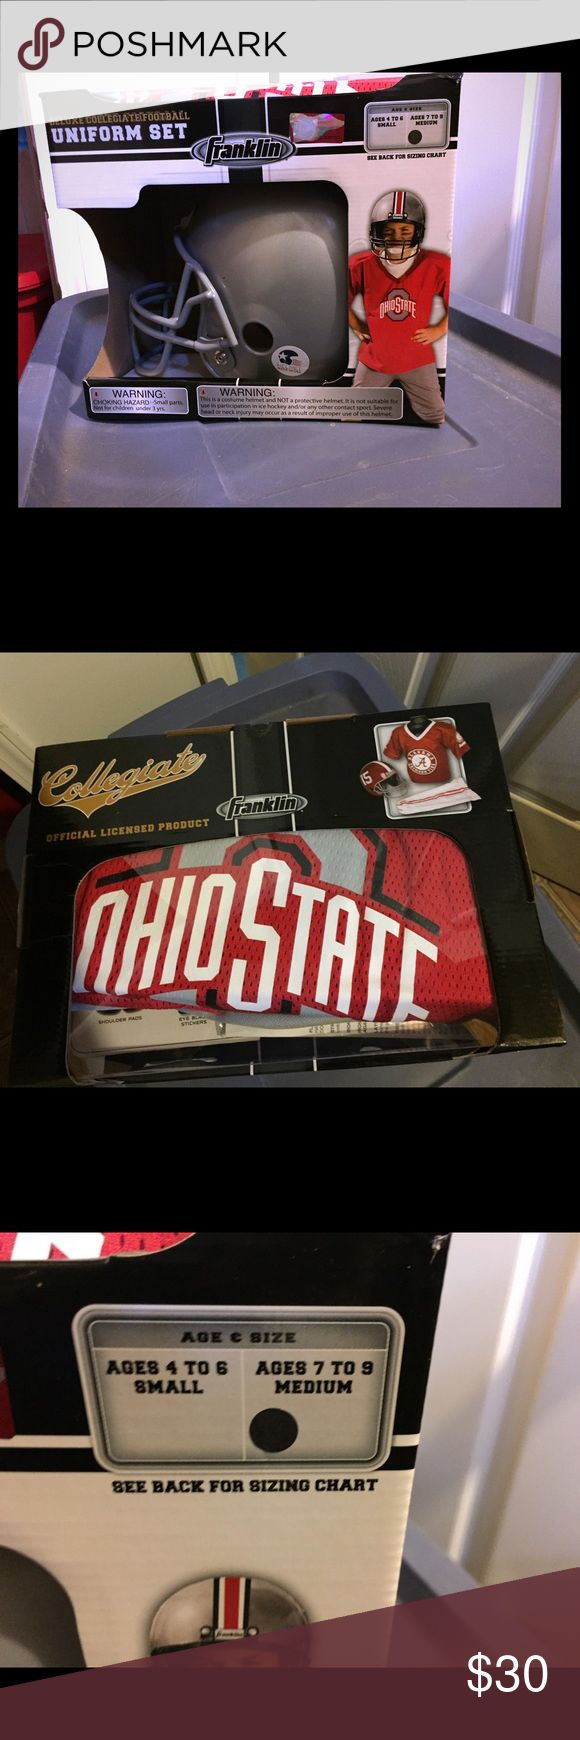 Boys Ohio State football uniform Boys Ohio State University football uniform, new never opened. Includes helmet, jersey, and football pants, size 6/7 M Costumes Seasonal